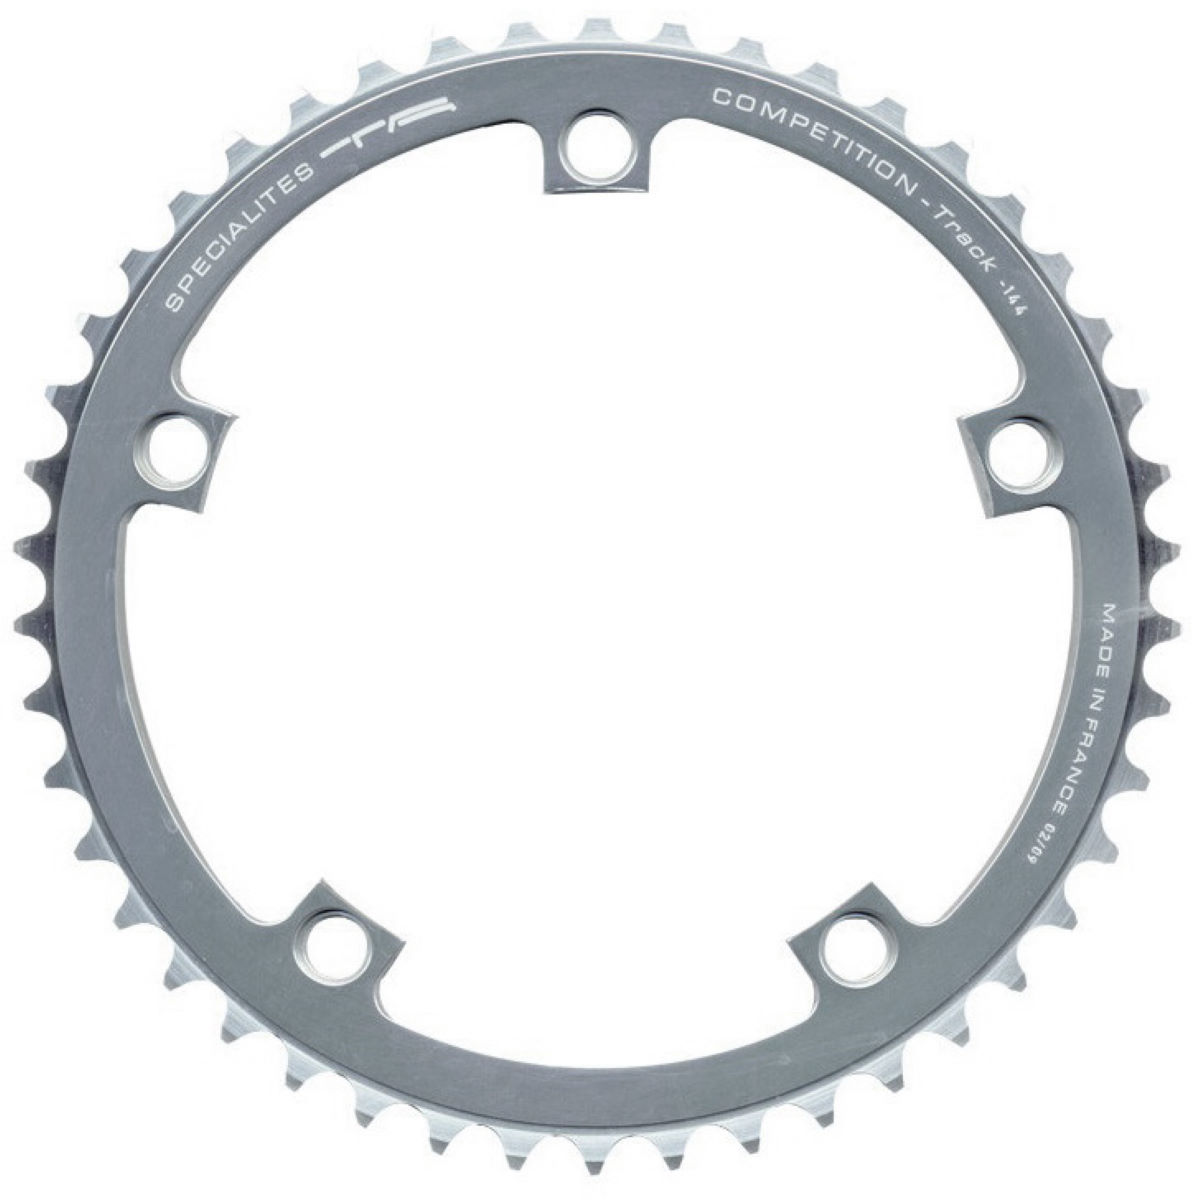 TA Shim/Camp Track Chainring   Chain Rings